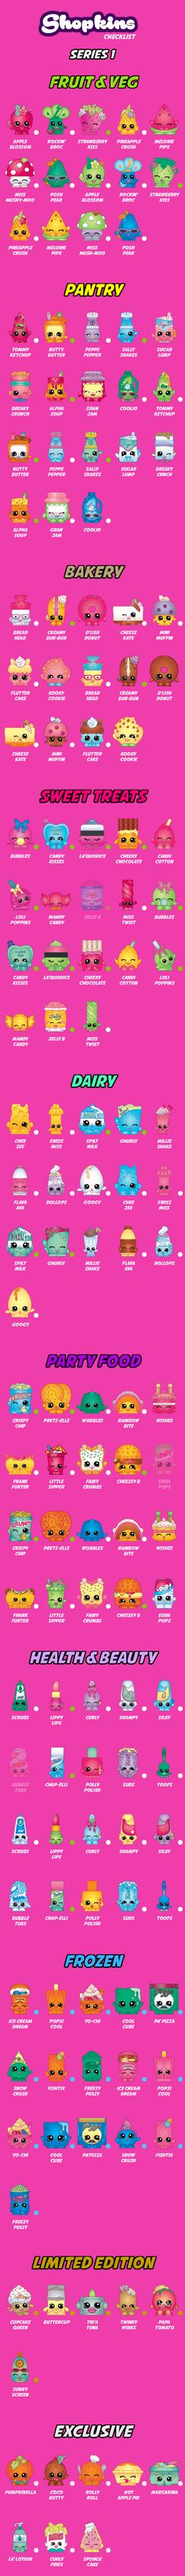 out my Shopkins Collection - Get the Shopkins Checklist app on iOS and Android App Stores!Check out my Shopkins Collection - Get the Shopkins Checklist app on iOS and Android App Stores! Shopkins Checklist, Shopkins List, Bolo Shopkins, Shopkins Season 1, Shopkins World, Shopkins Bday, Free Shopkins, Party Fiesta, Ideas Party